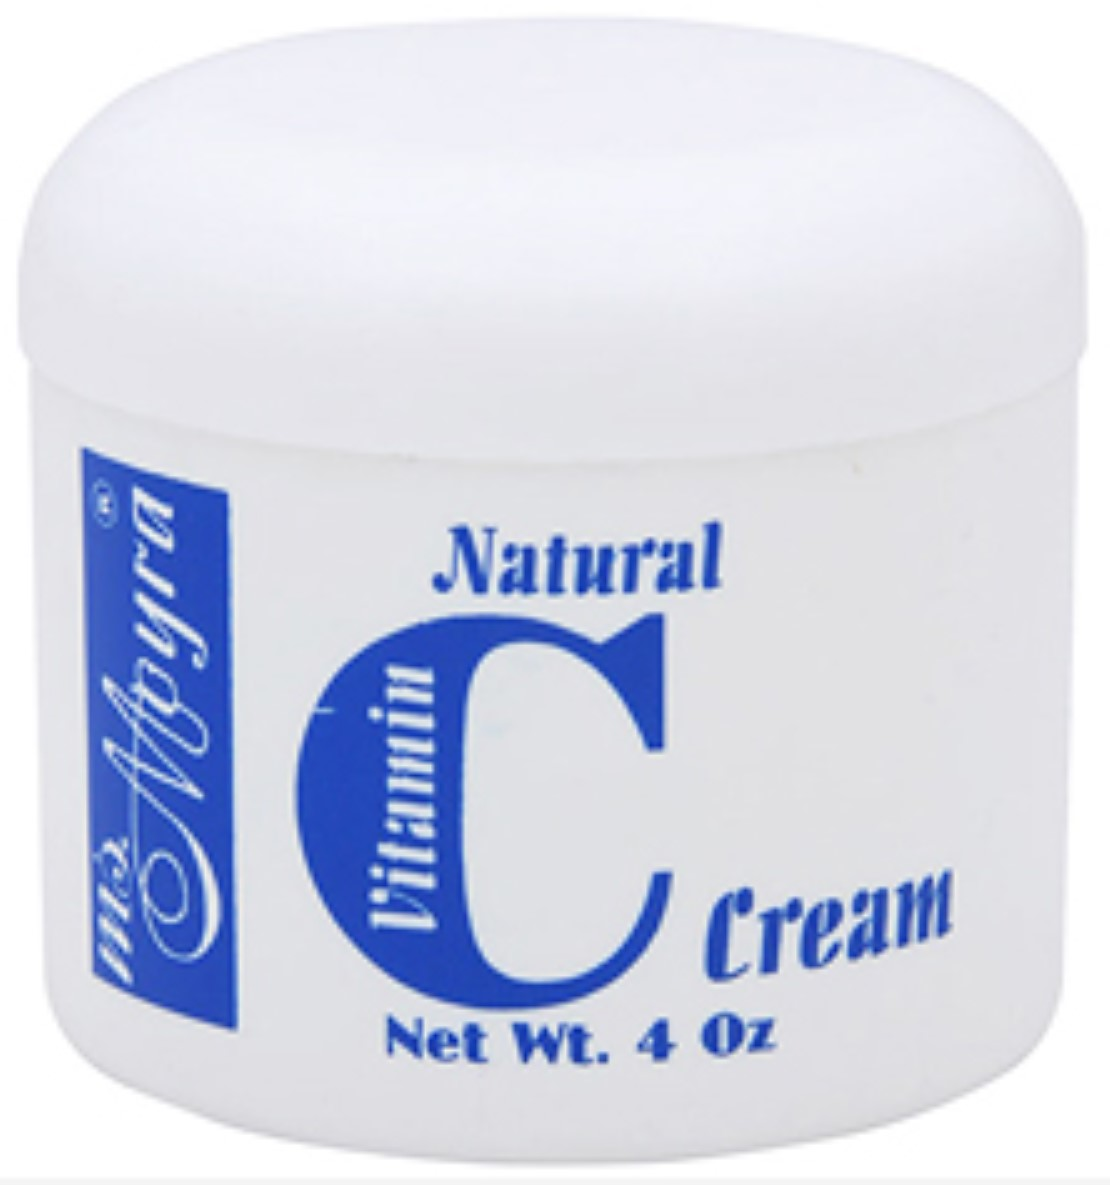 Ms. Moyra Natural Vitamin C Cream 4 oz (Pack of 3)